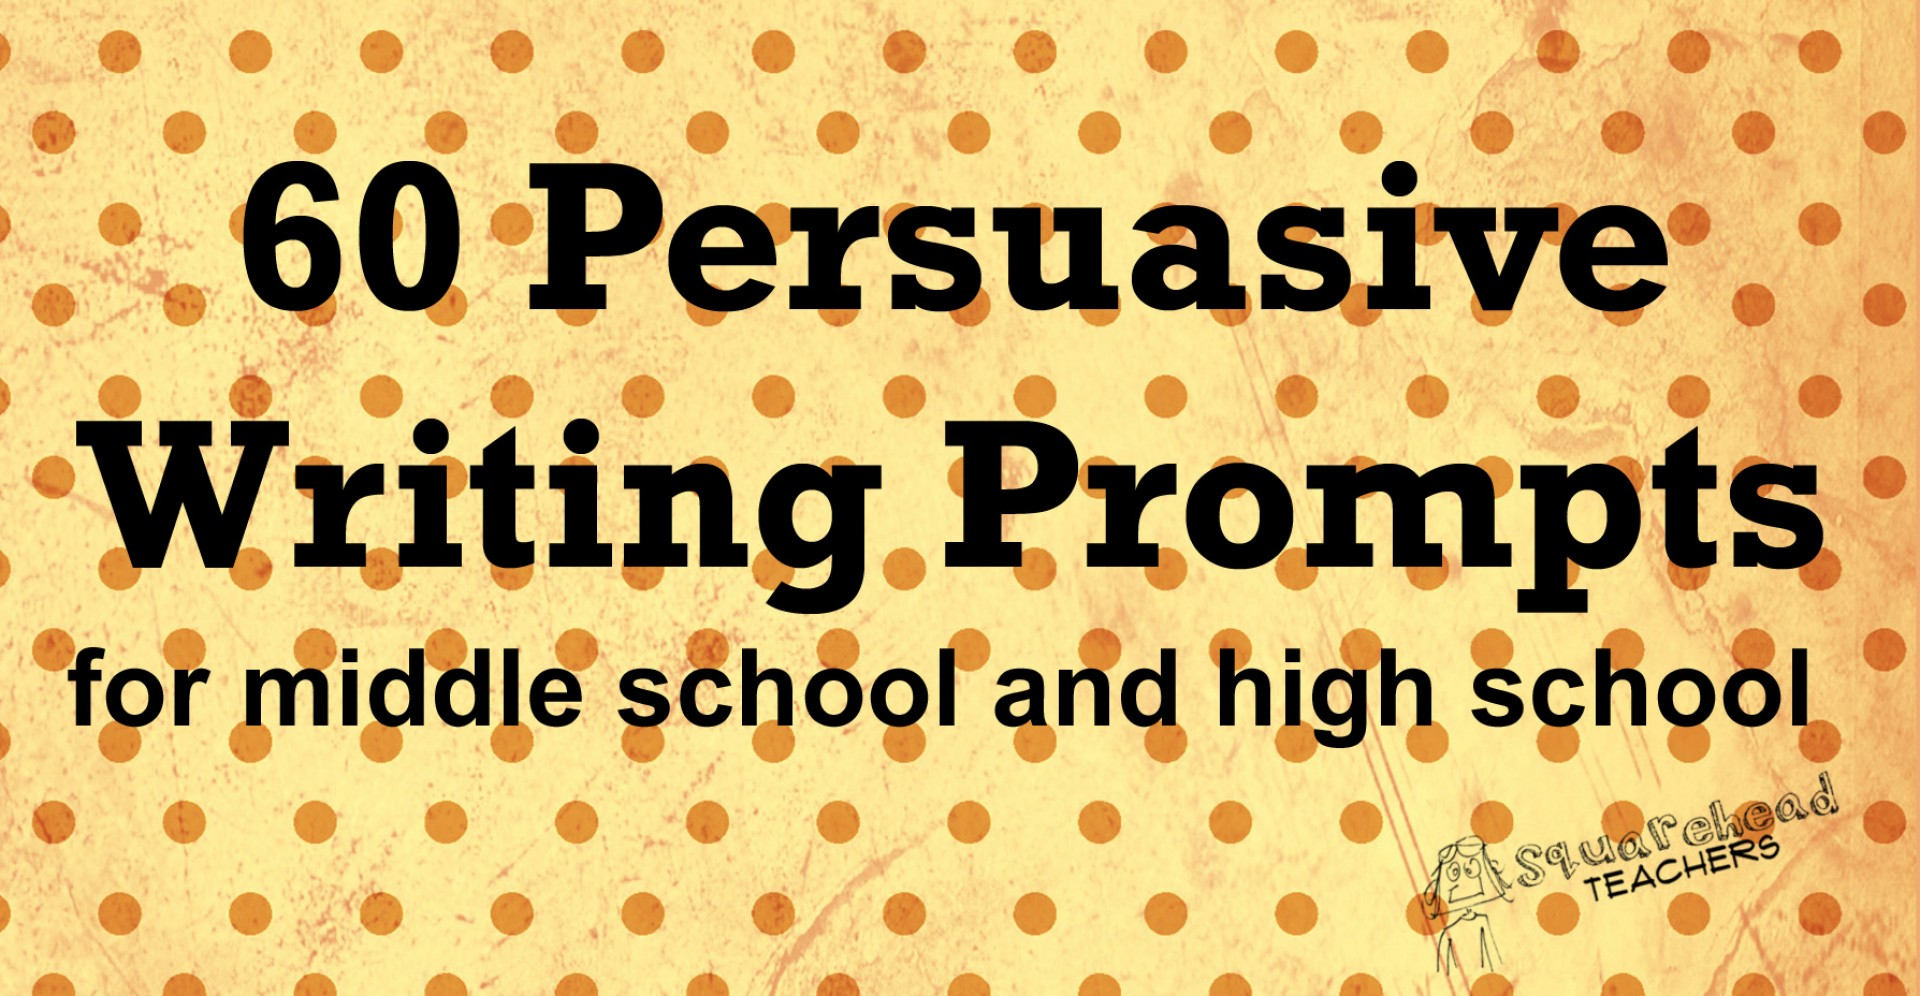 003 Essay Example Pers Writing Prompts For Ms And Hs High Stupendous School Tumblr Expository Staar Creative 1920